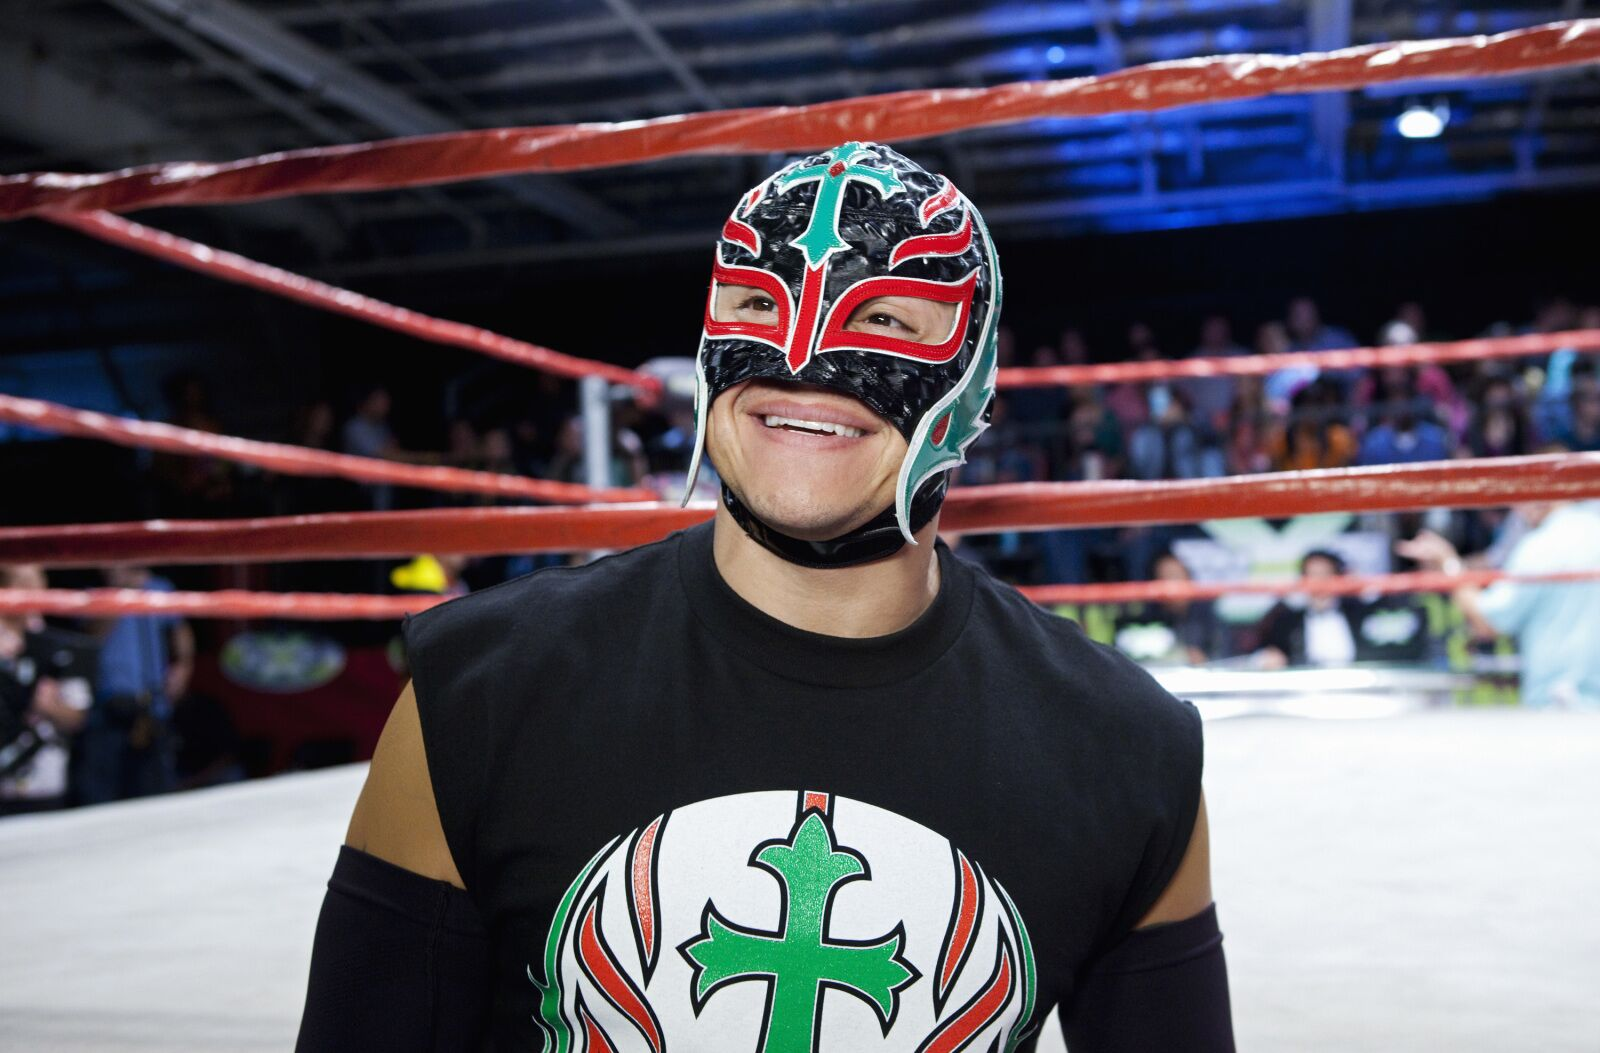 WWE Chronicle on Rey Mysterio to air day before TLC 2019